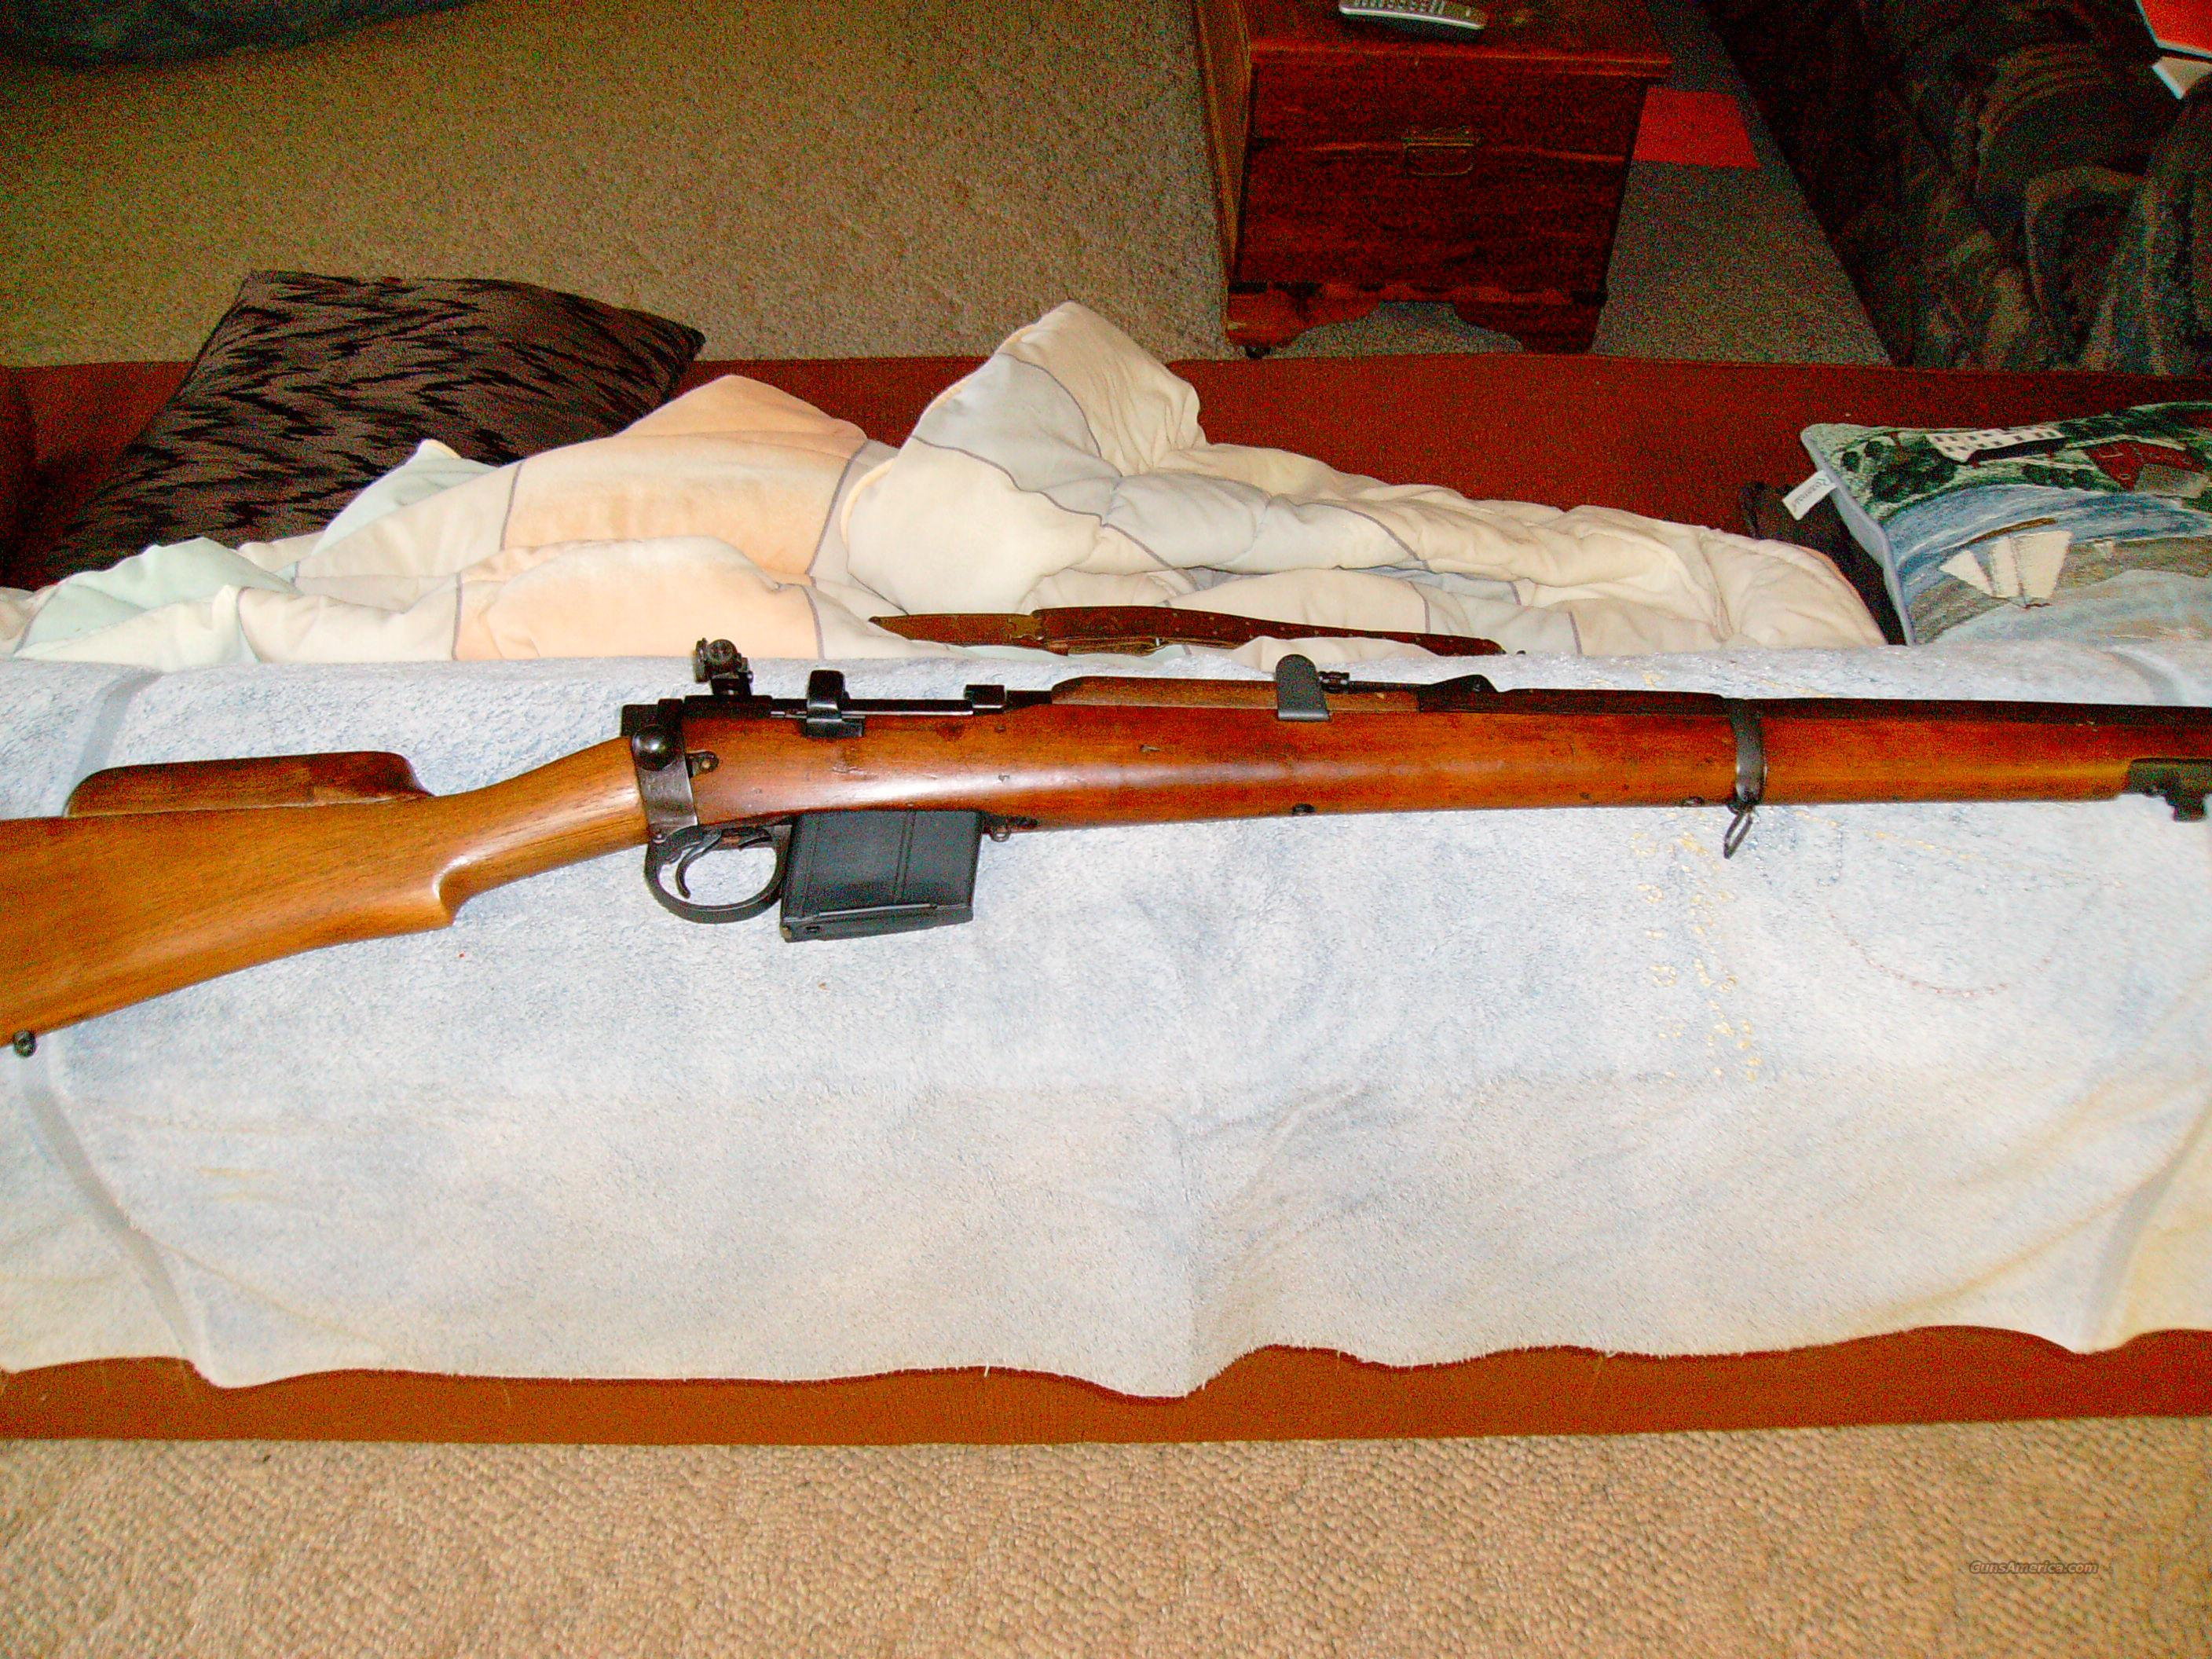 1967 R.F.I. Enfield 2A1 7.62 NATO w/ph5a match sight  Guns > Rifles > Enfield Rifle